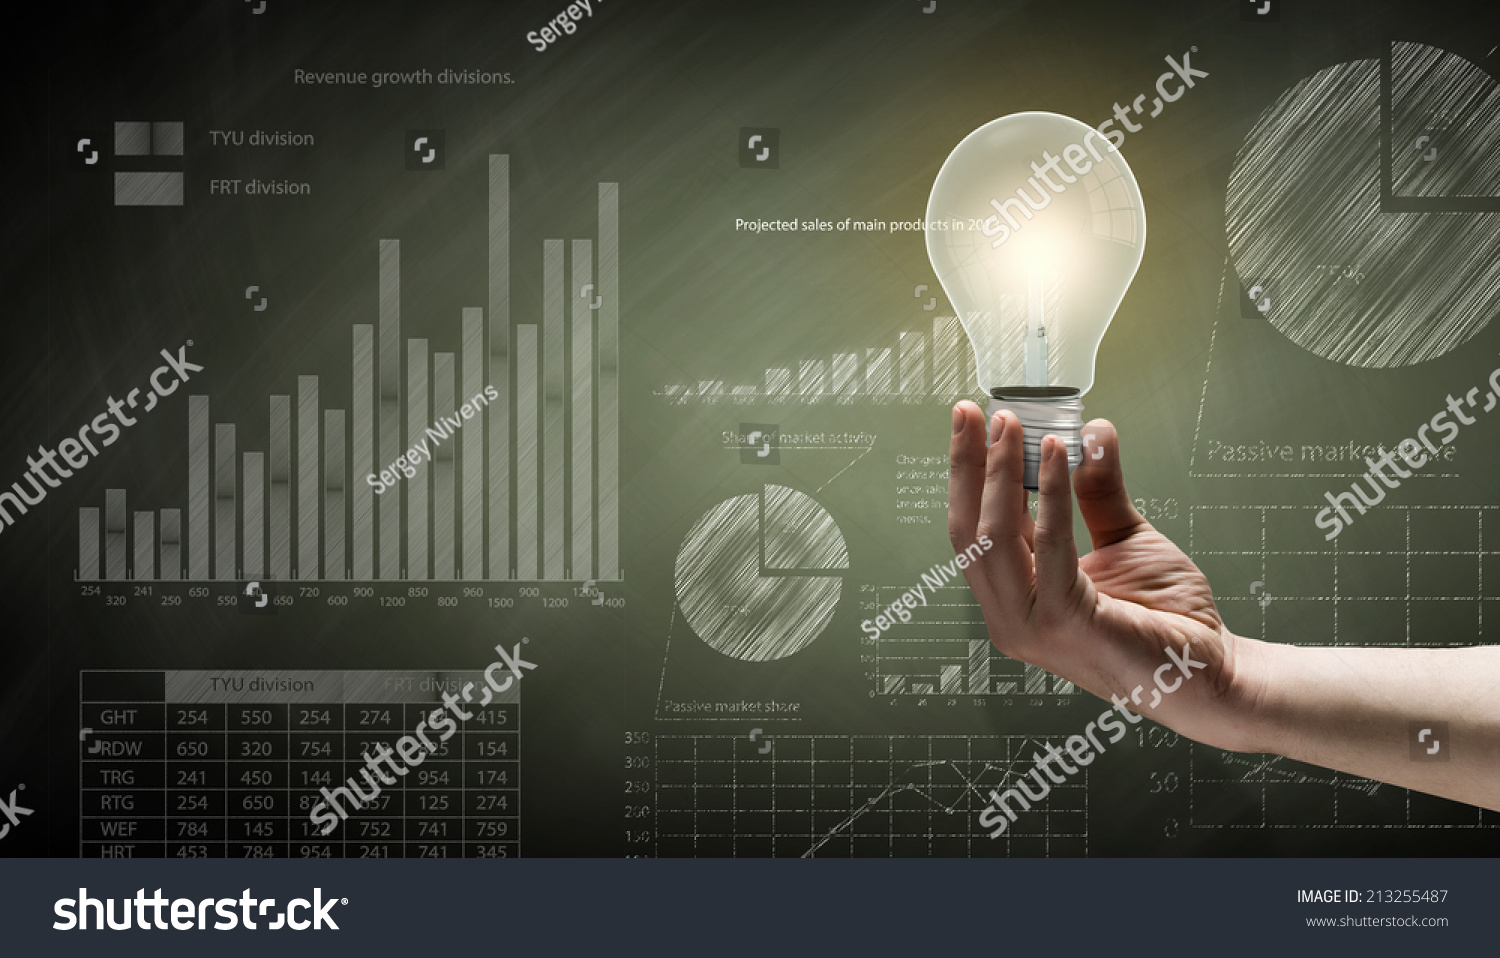 Royalty Free Conceptual Image With Light Bulb 213255487 Stock Incandescent Diagram Diagrams And Graphs